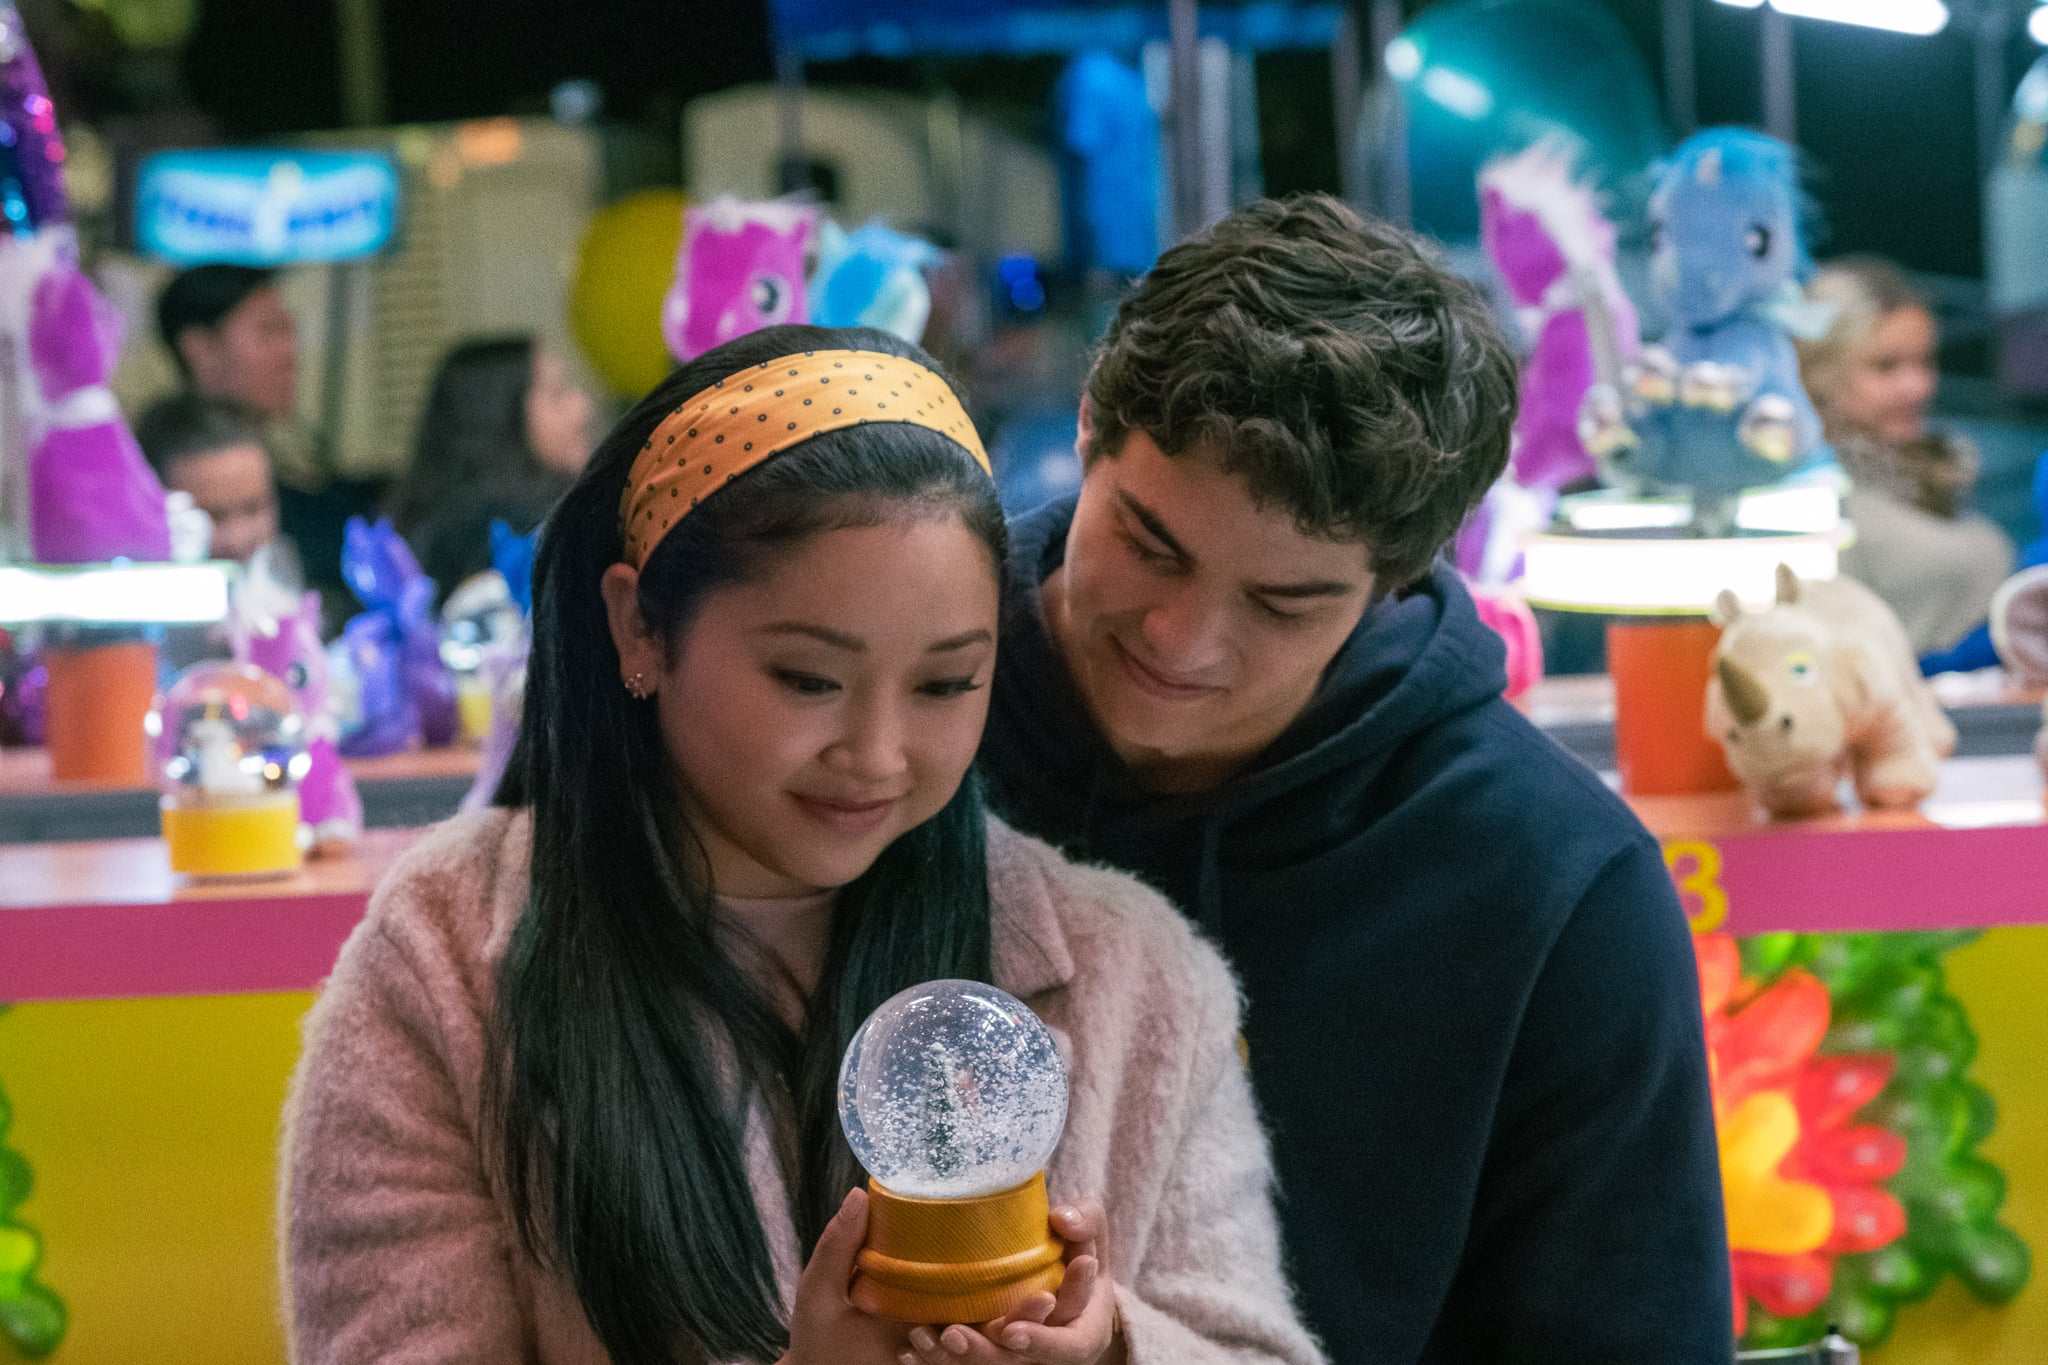 TO ALL THE BOYS IVE LOVED BEFORE 3.  Lana Condor as Lara Jean Covey, Noah Centineo as Peter Kavinsky, in TO ALL THE BOYS IVE LOVED BEFORE 3. Cr. Katie Yu / Netflix © 2020